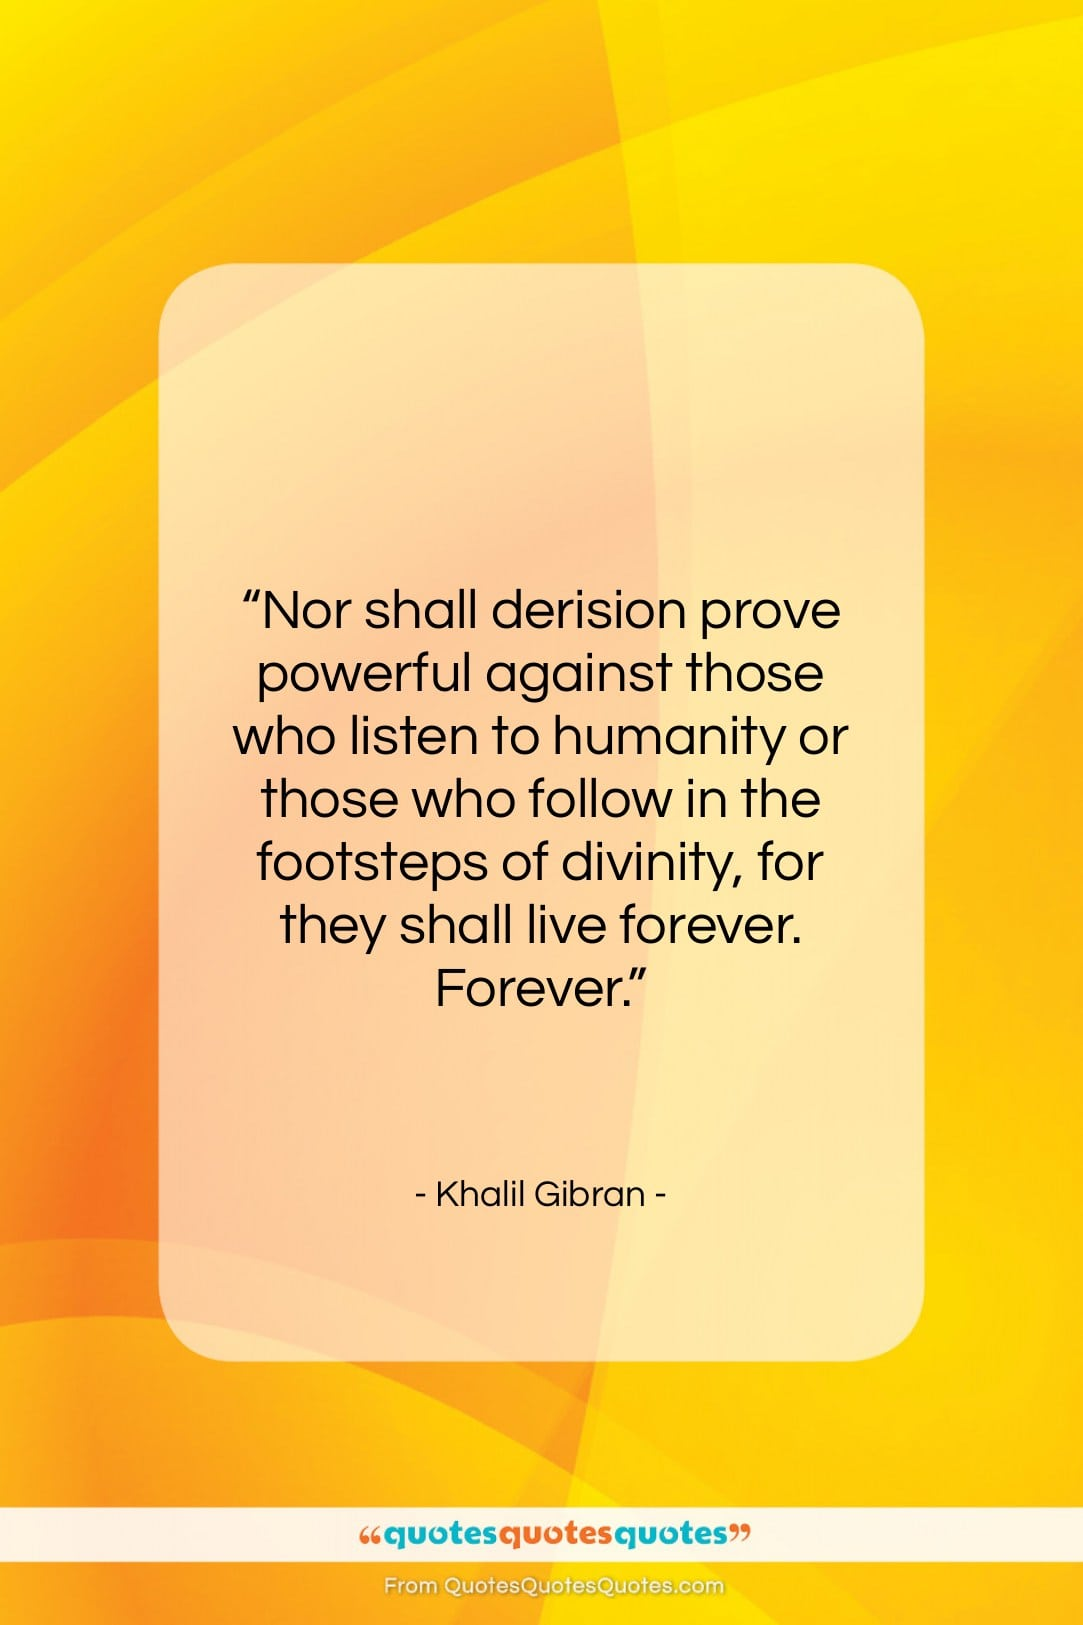 """Khalil Gibran quote: """"Nor shall derision prove powerful against those…""""- at QuotesQuotesQuotes.com"""